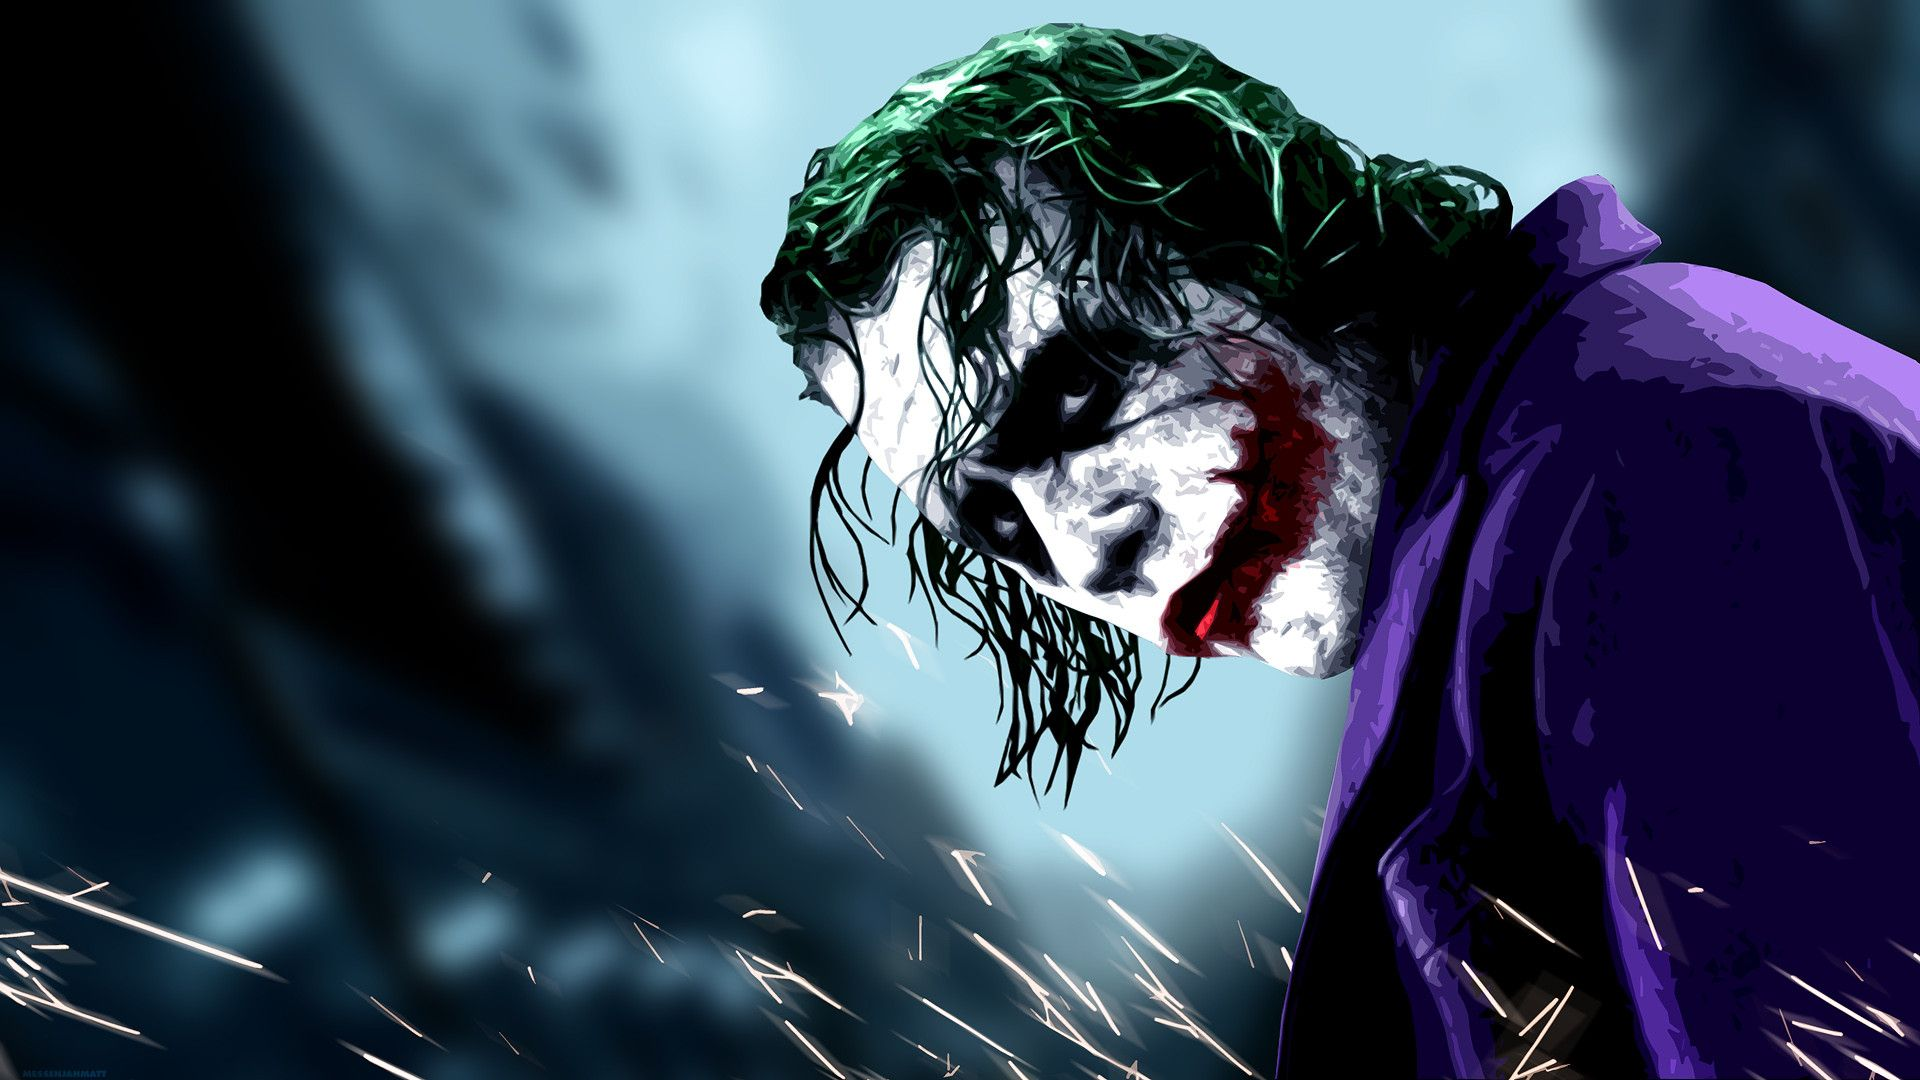 Movie Wallpaper Joker Card 1080p Wallpaper For HD Wallpaper